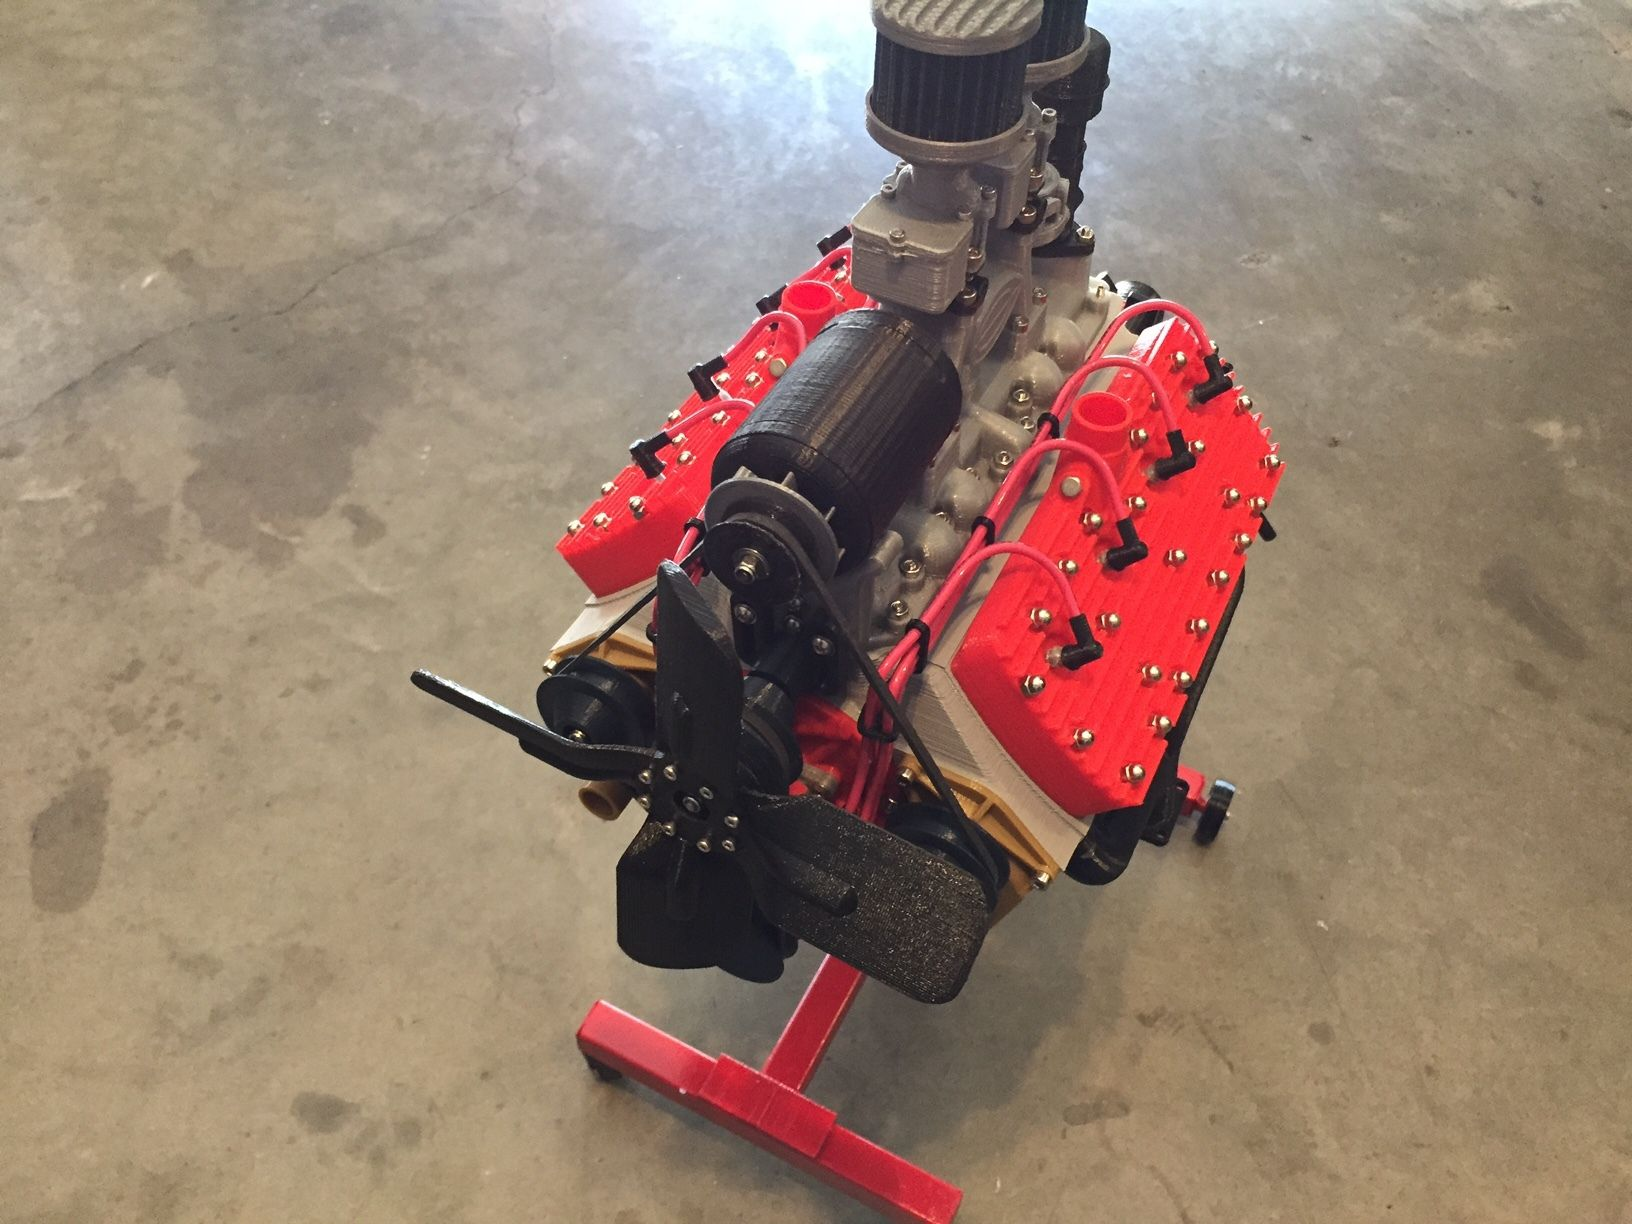 IMG_0480.JPG Download free STL file Ford Flat Head V8 Working Model Engine • 3D print template, 3D_Printed_Engines